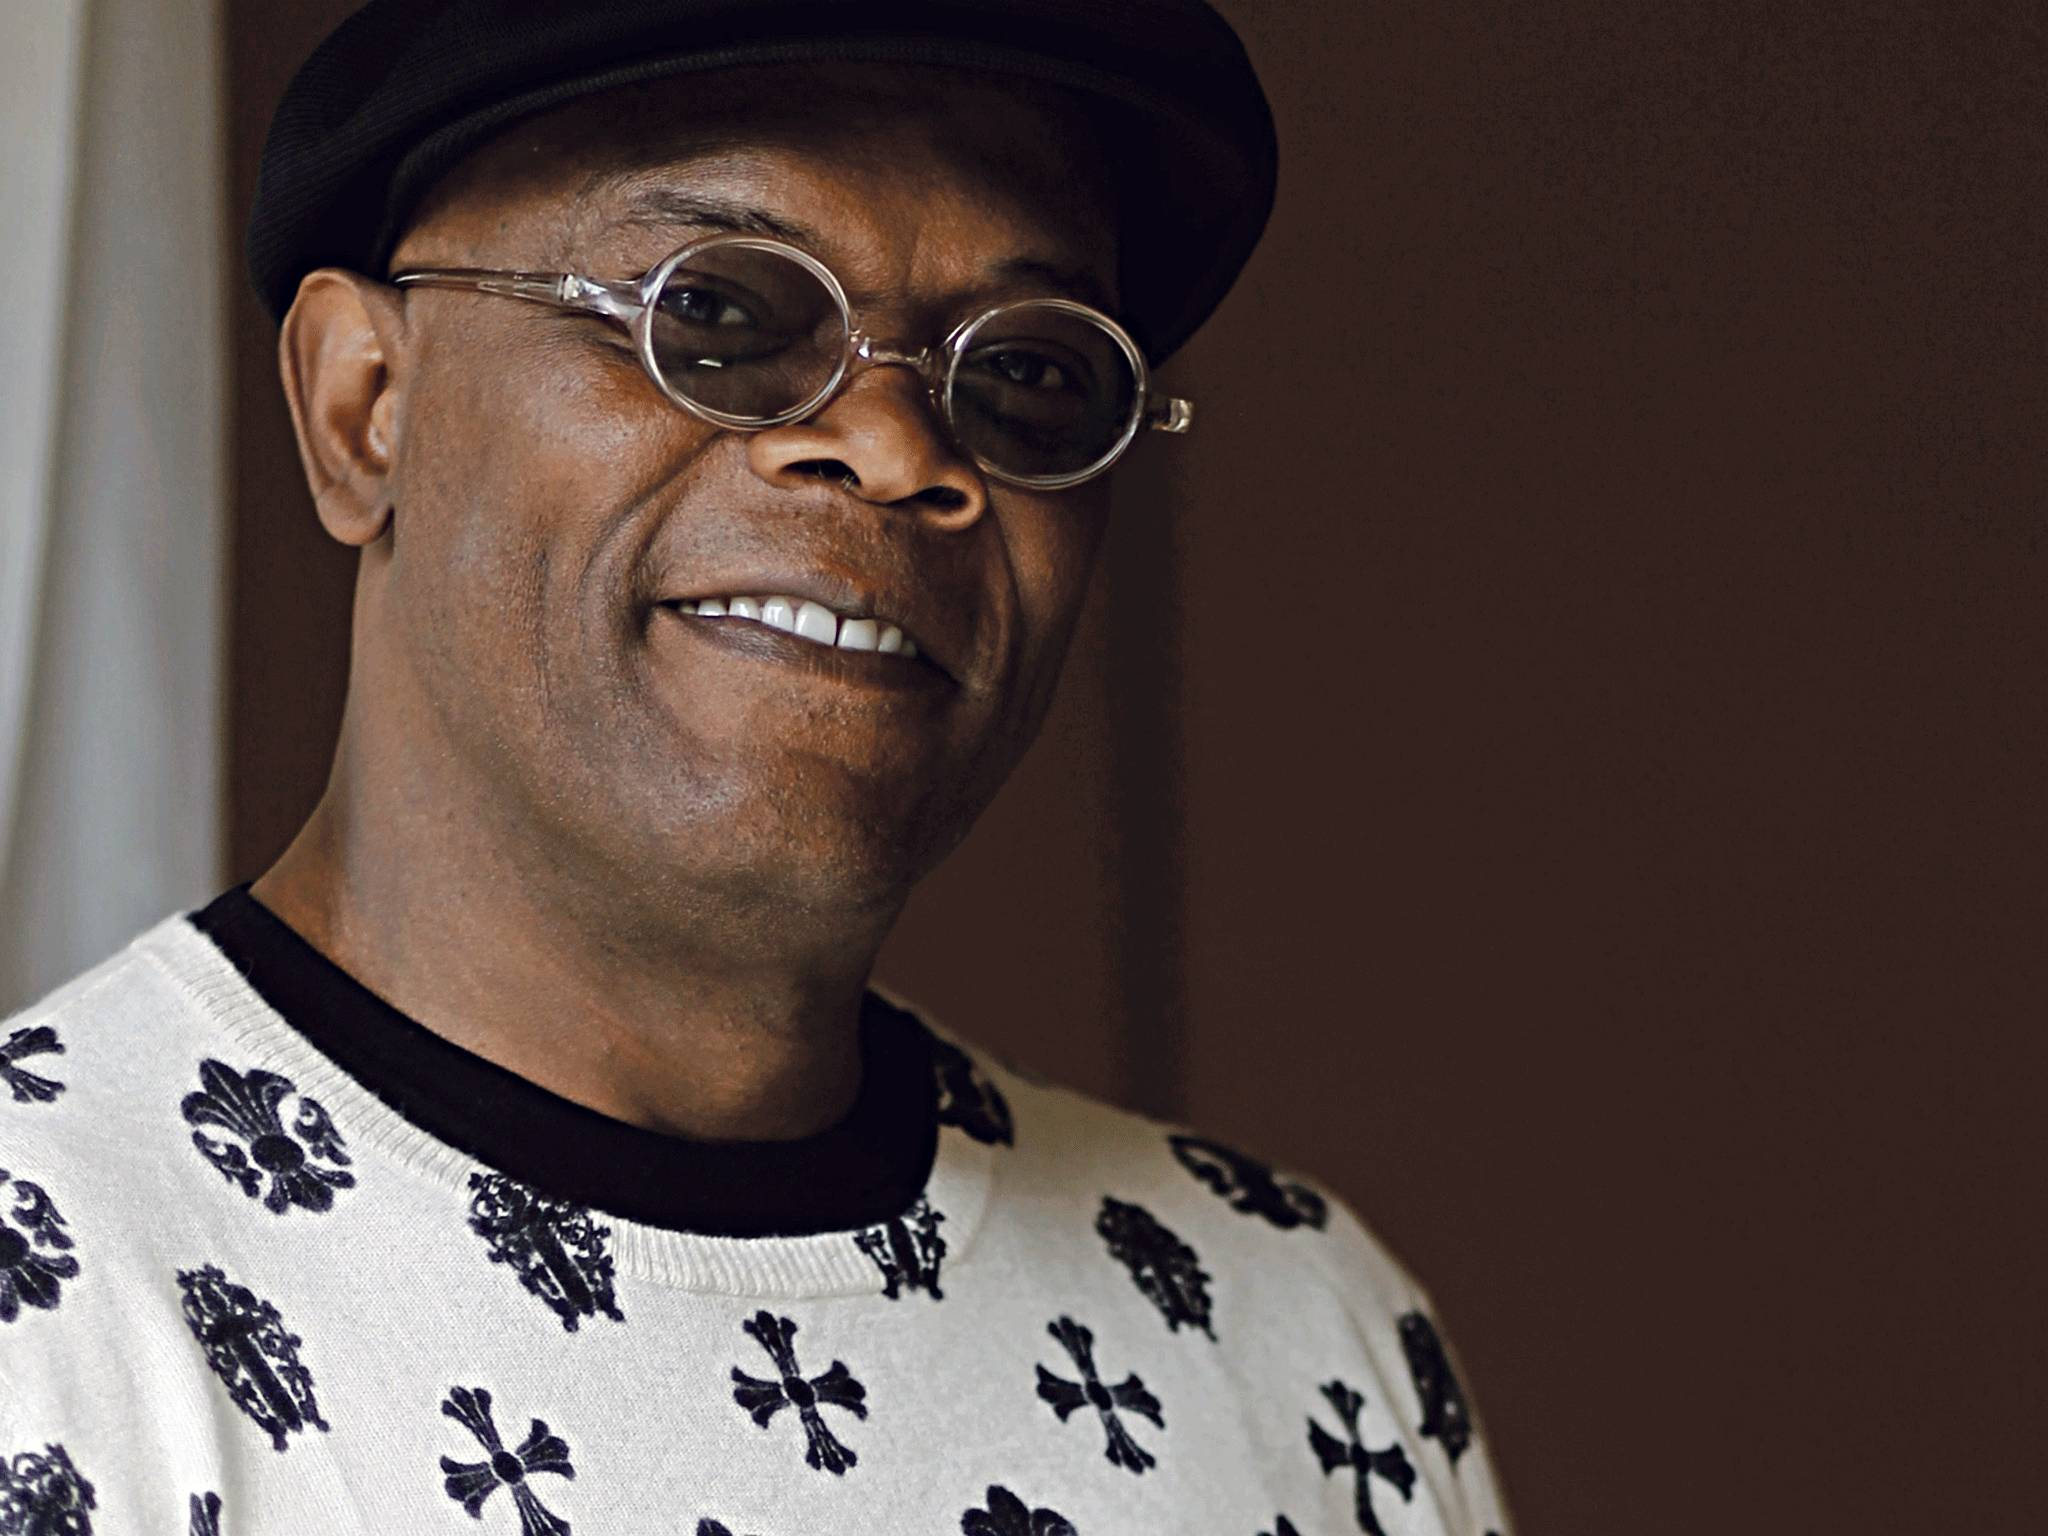 Samuel L Jackson: Tarantino, racism and the N-word - Features - Films - The Independent